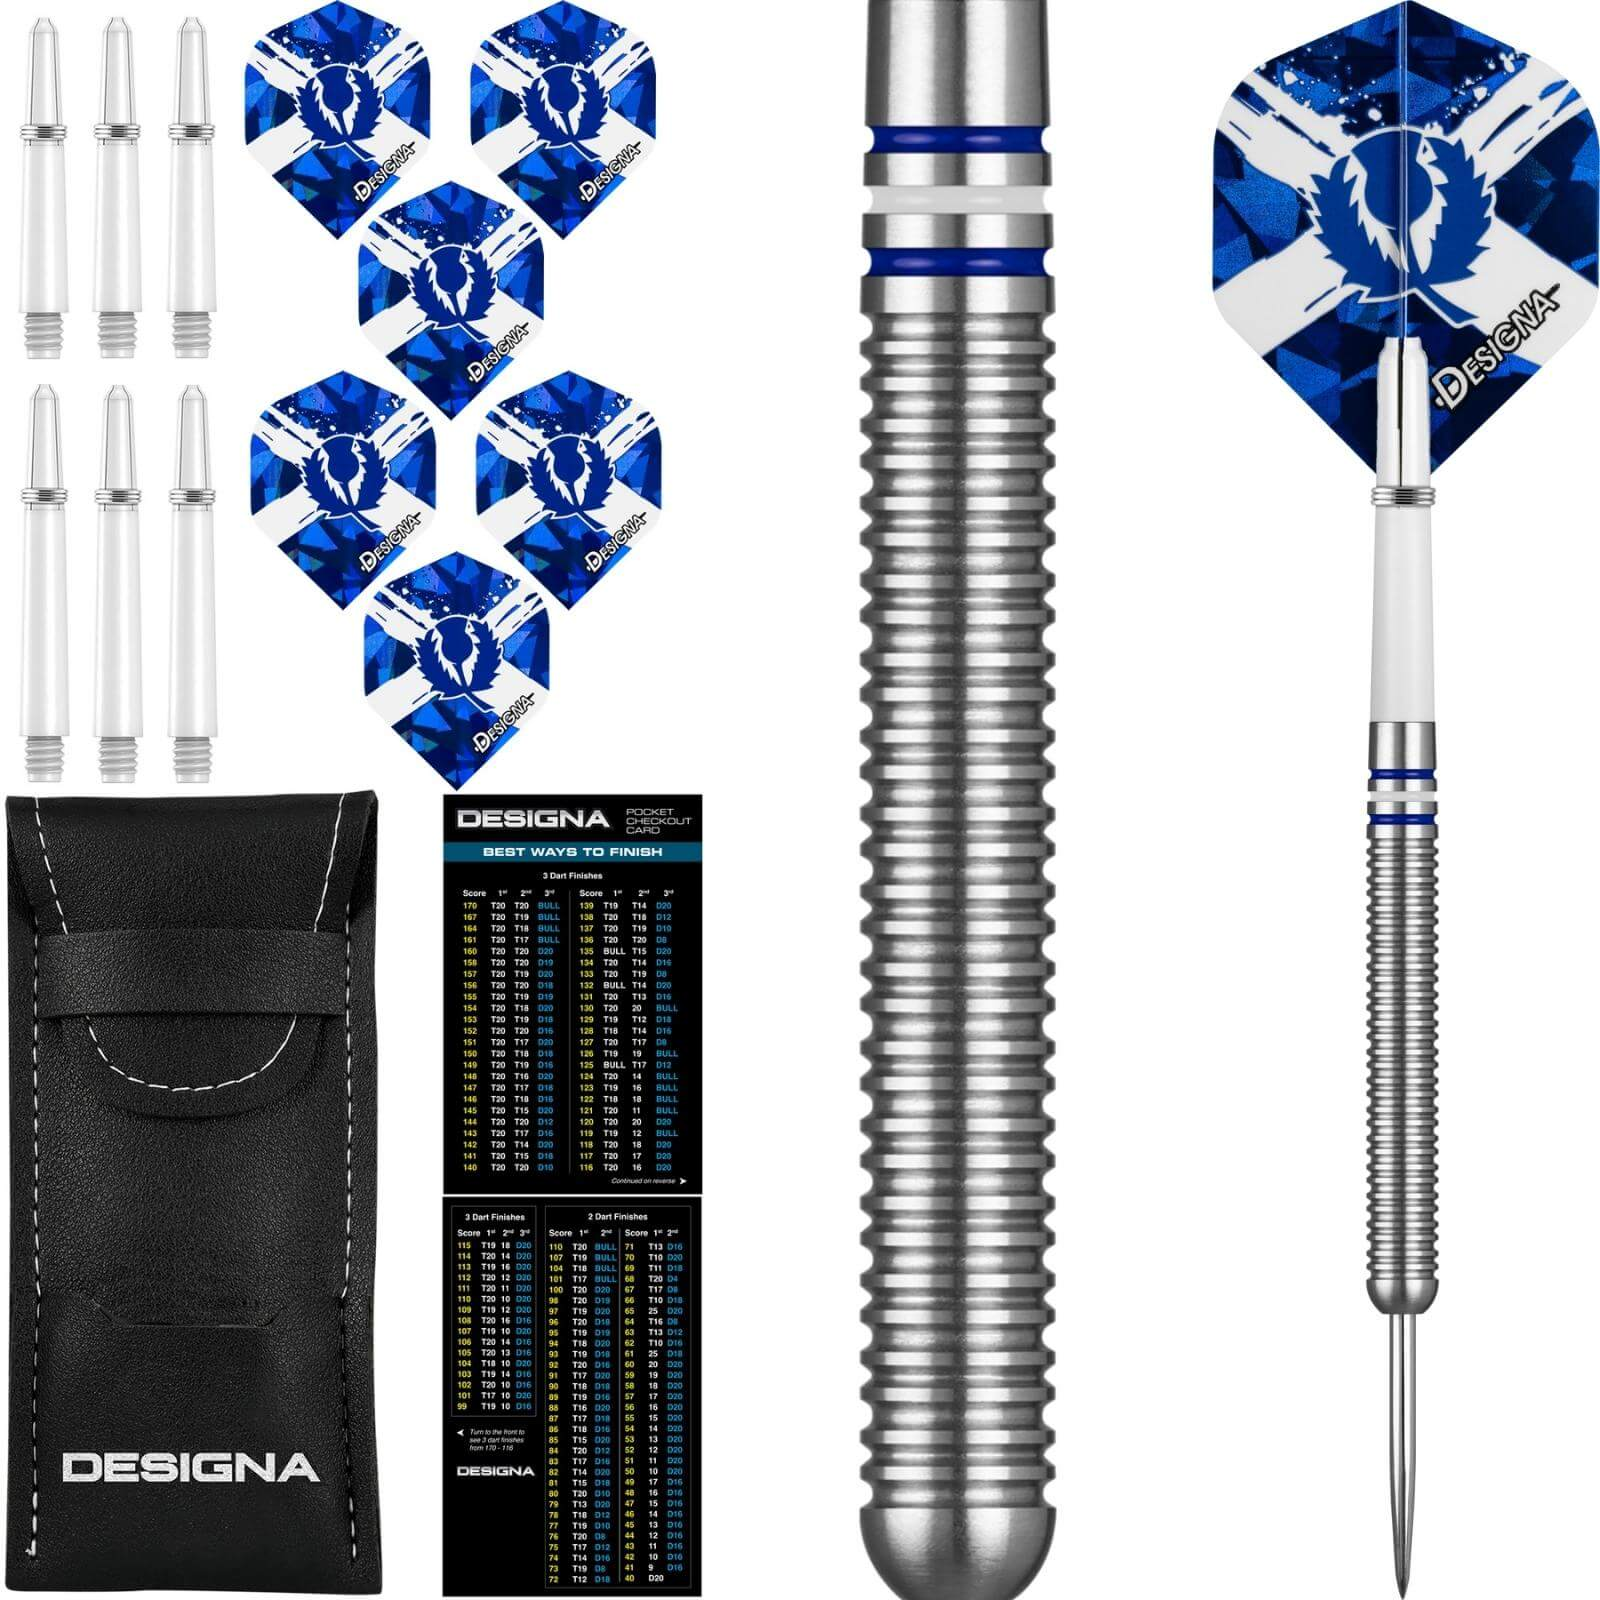 Darts - Designa - Patriot-X Darts - Scotland - Steel Tip - 90% Tungsten - 22g 24g